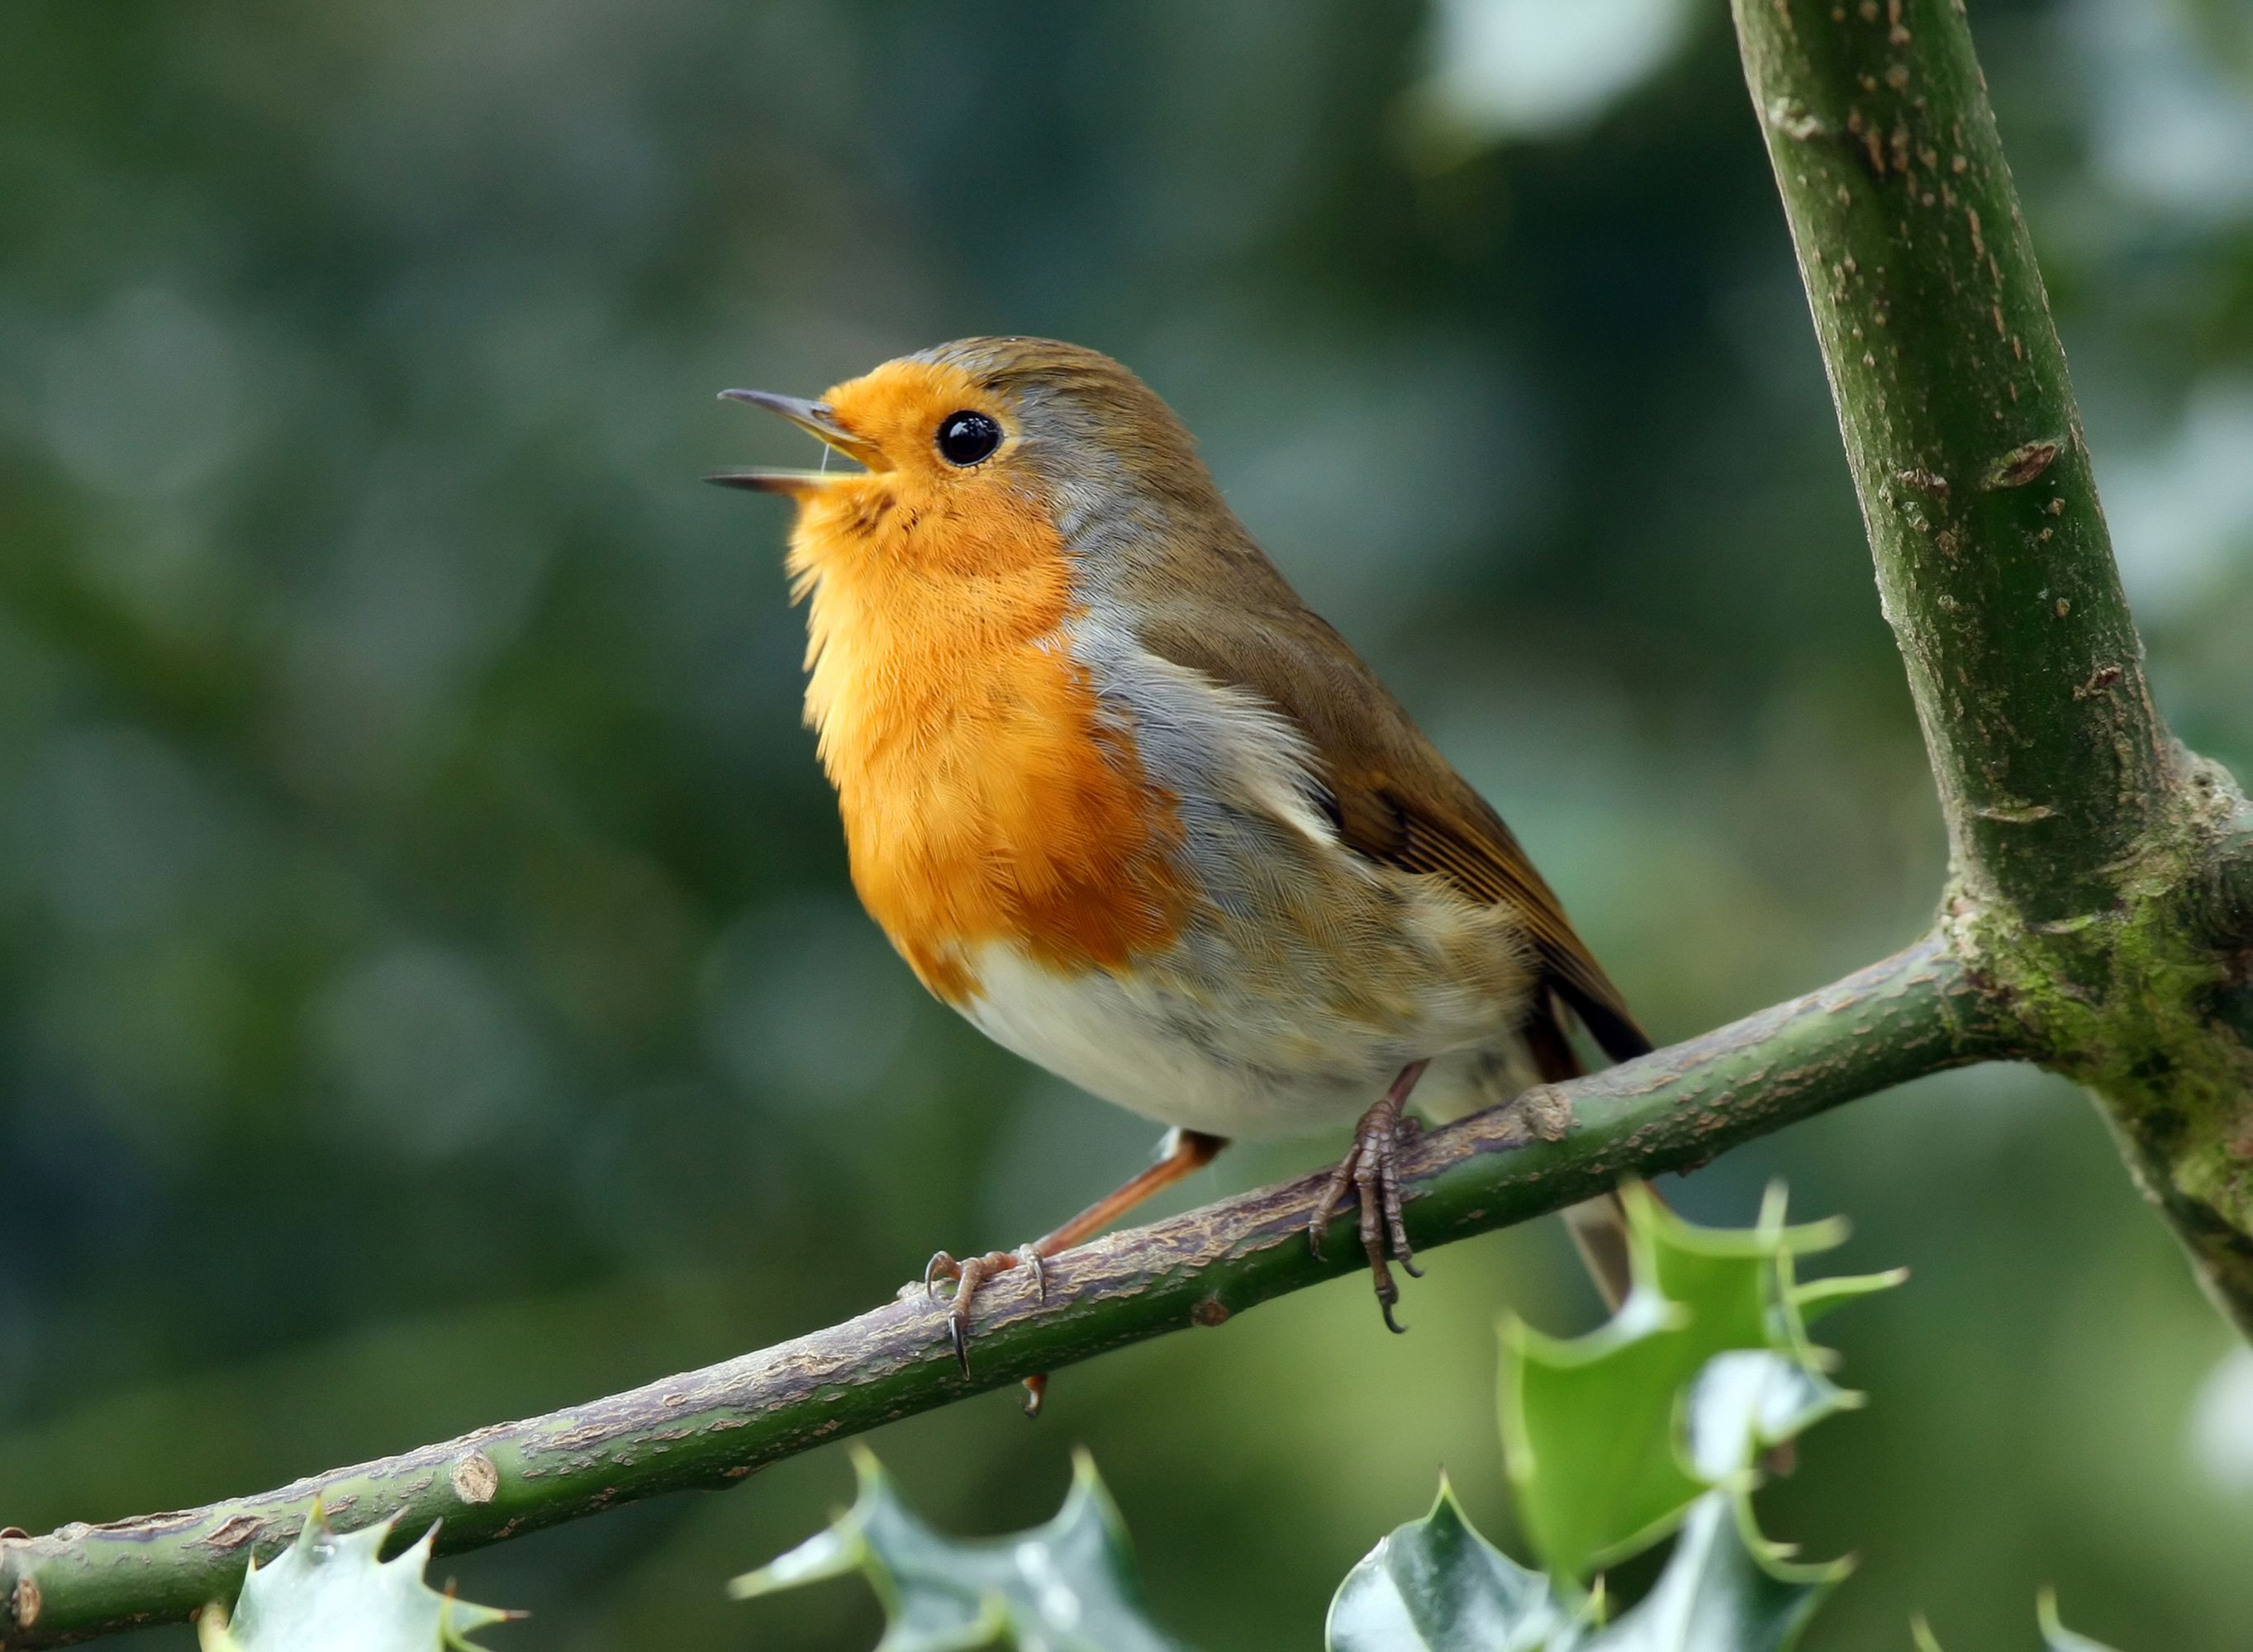 Thousands of UK locations will play soundtracks of birds singing tomorrow